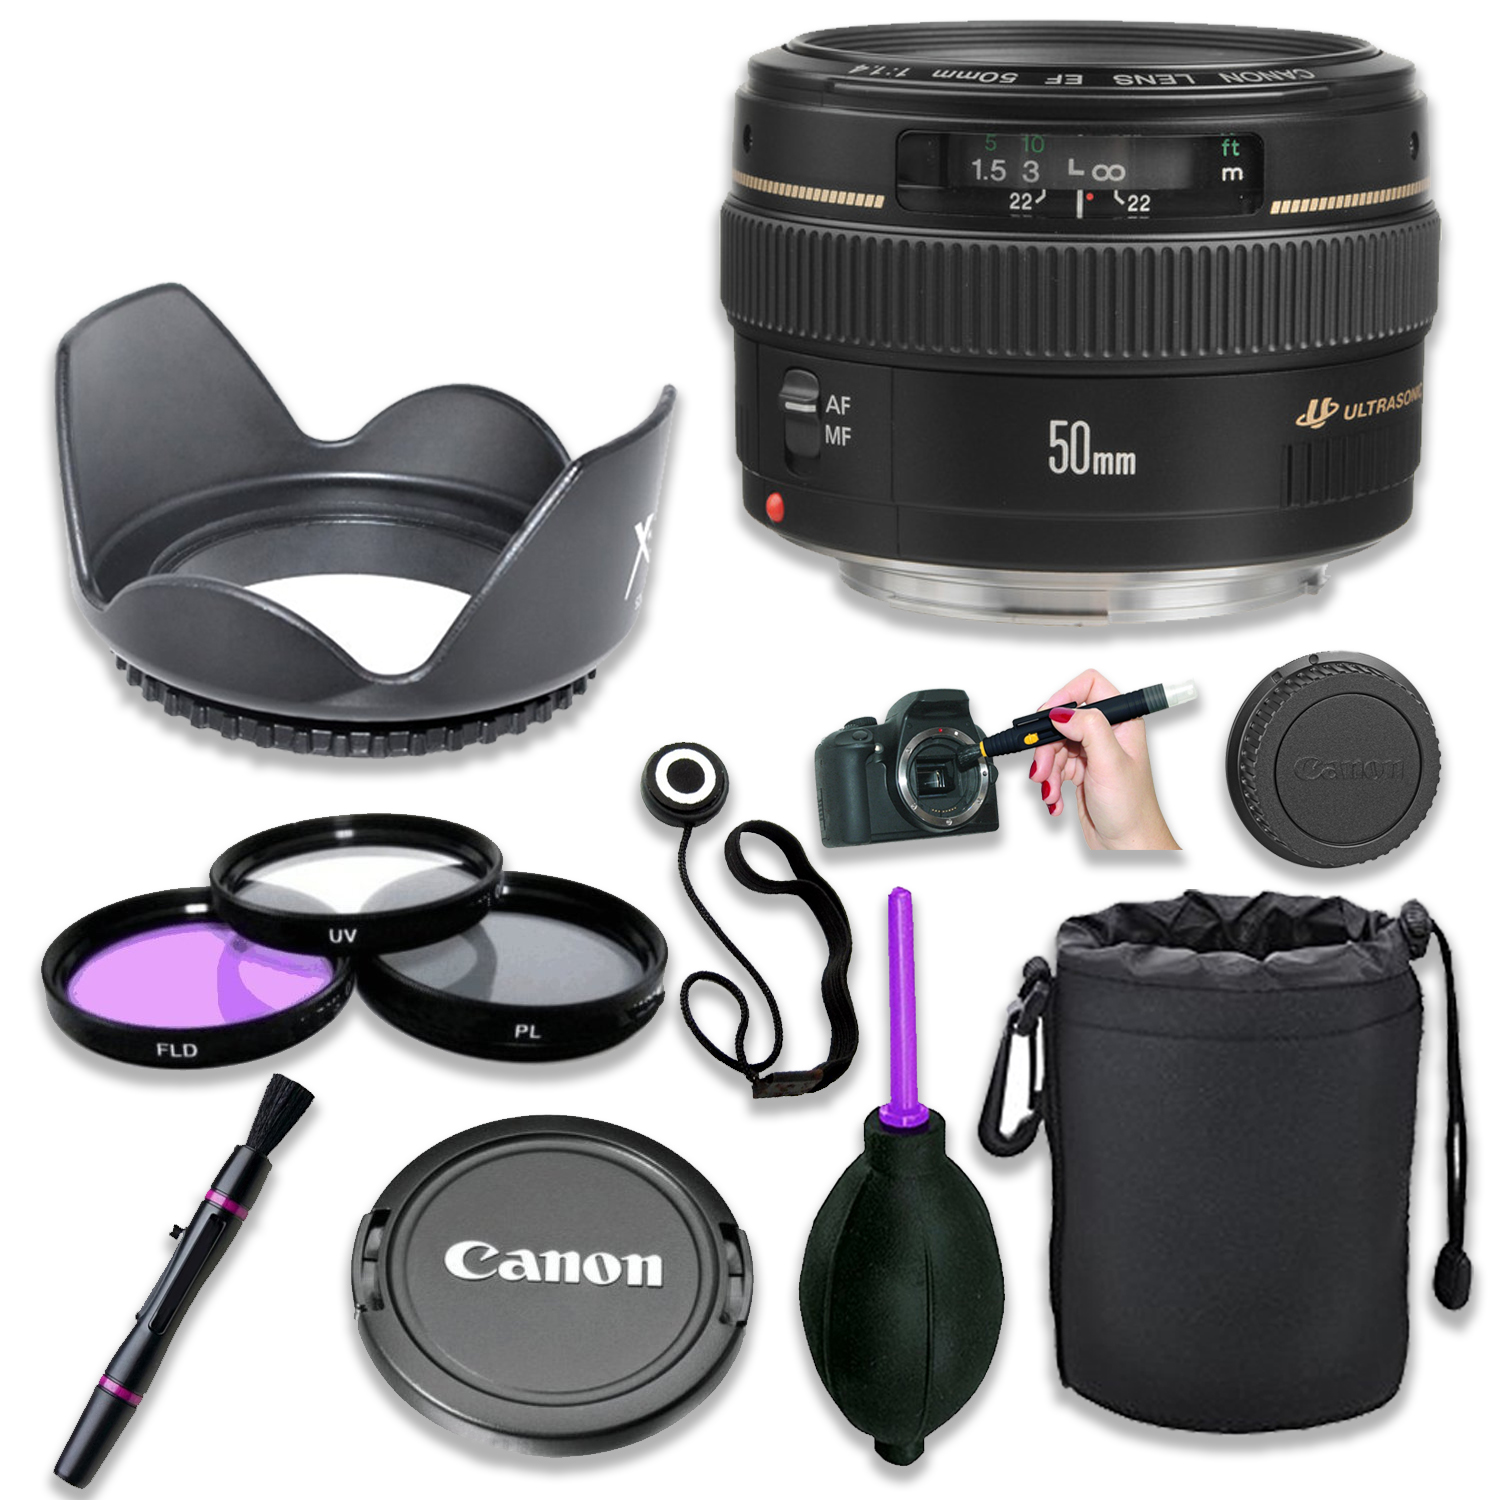 Lens Cap Cover Keeper Protector for Canon EF 50mm f//1.4 USM Lens